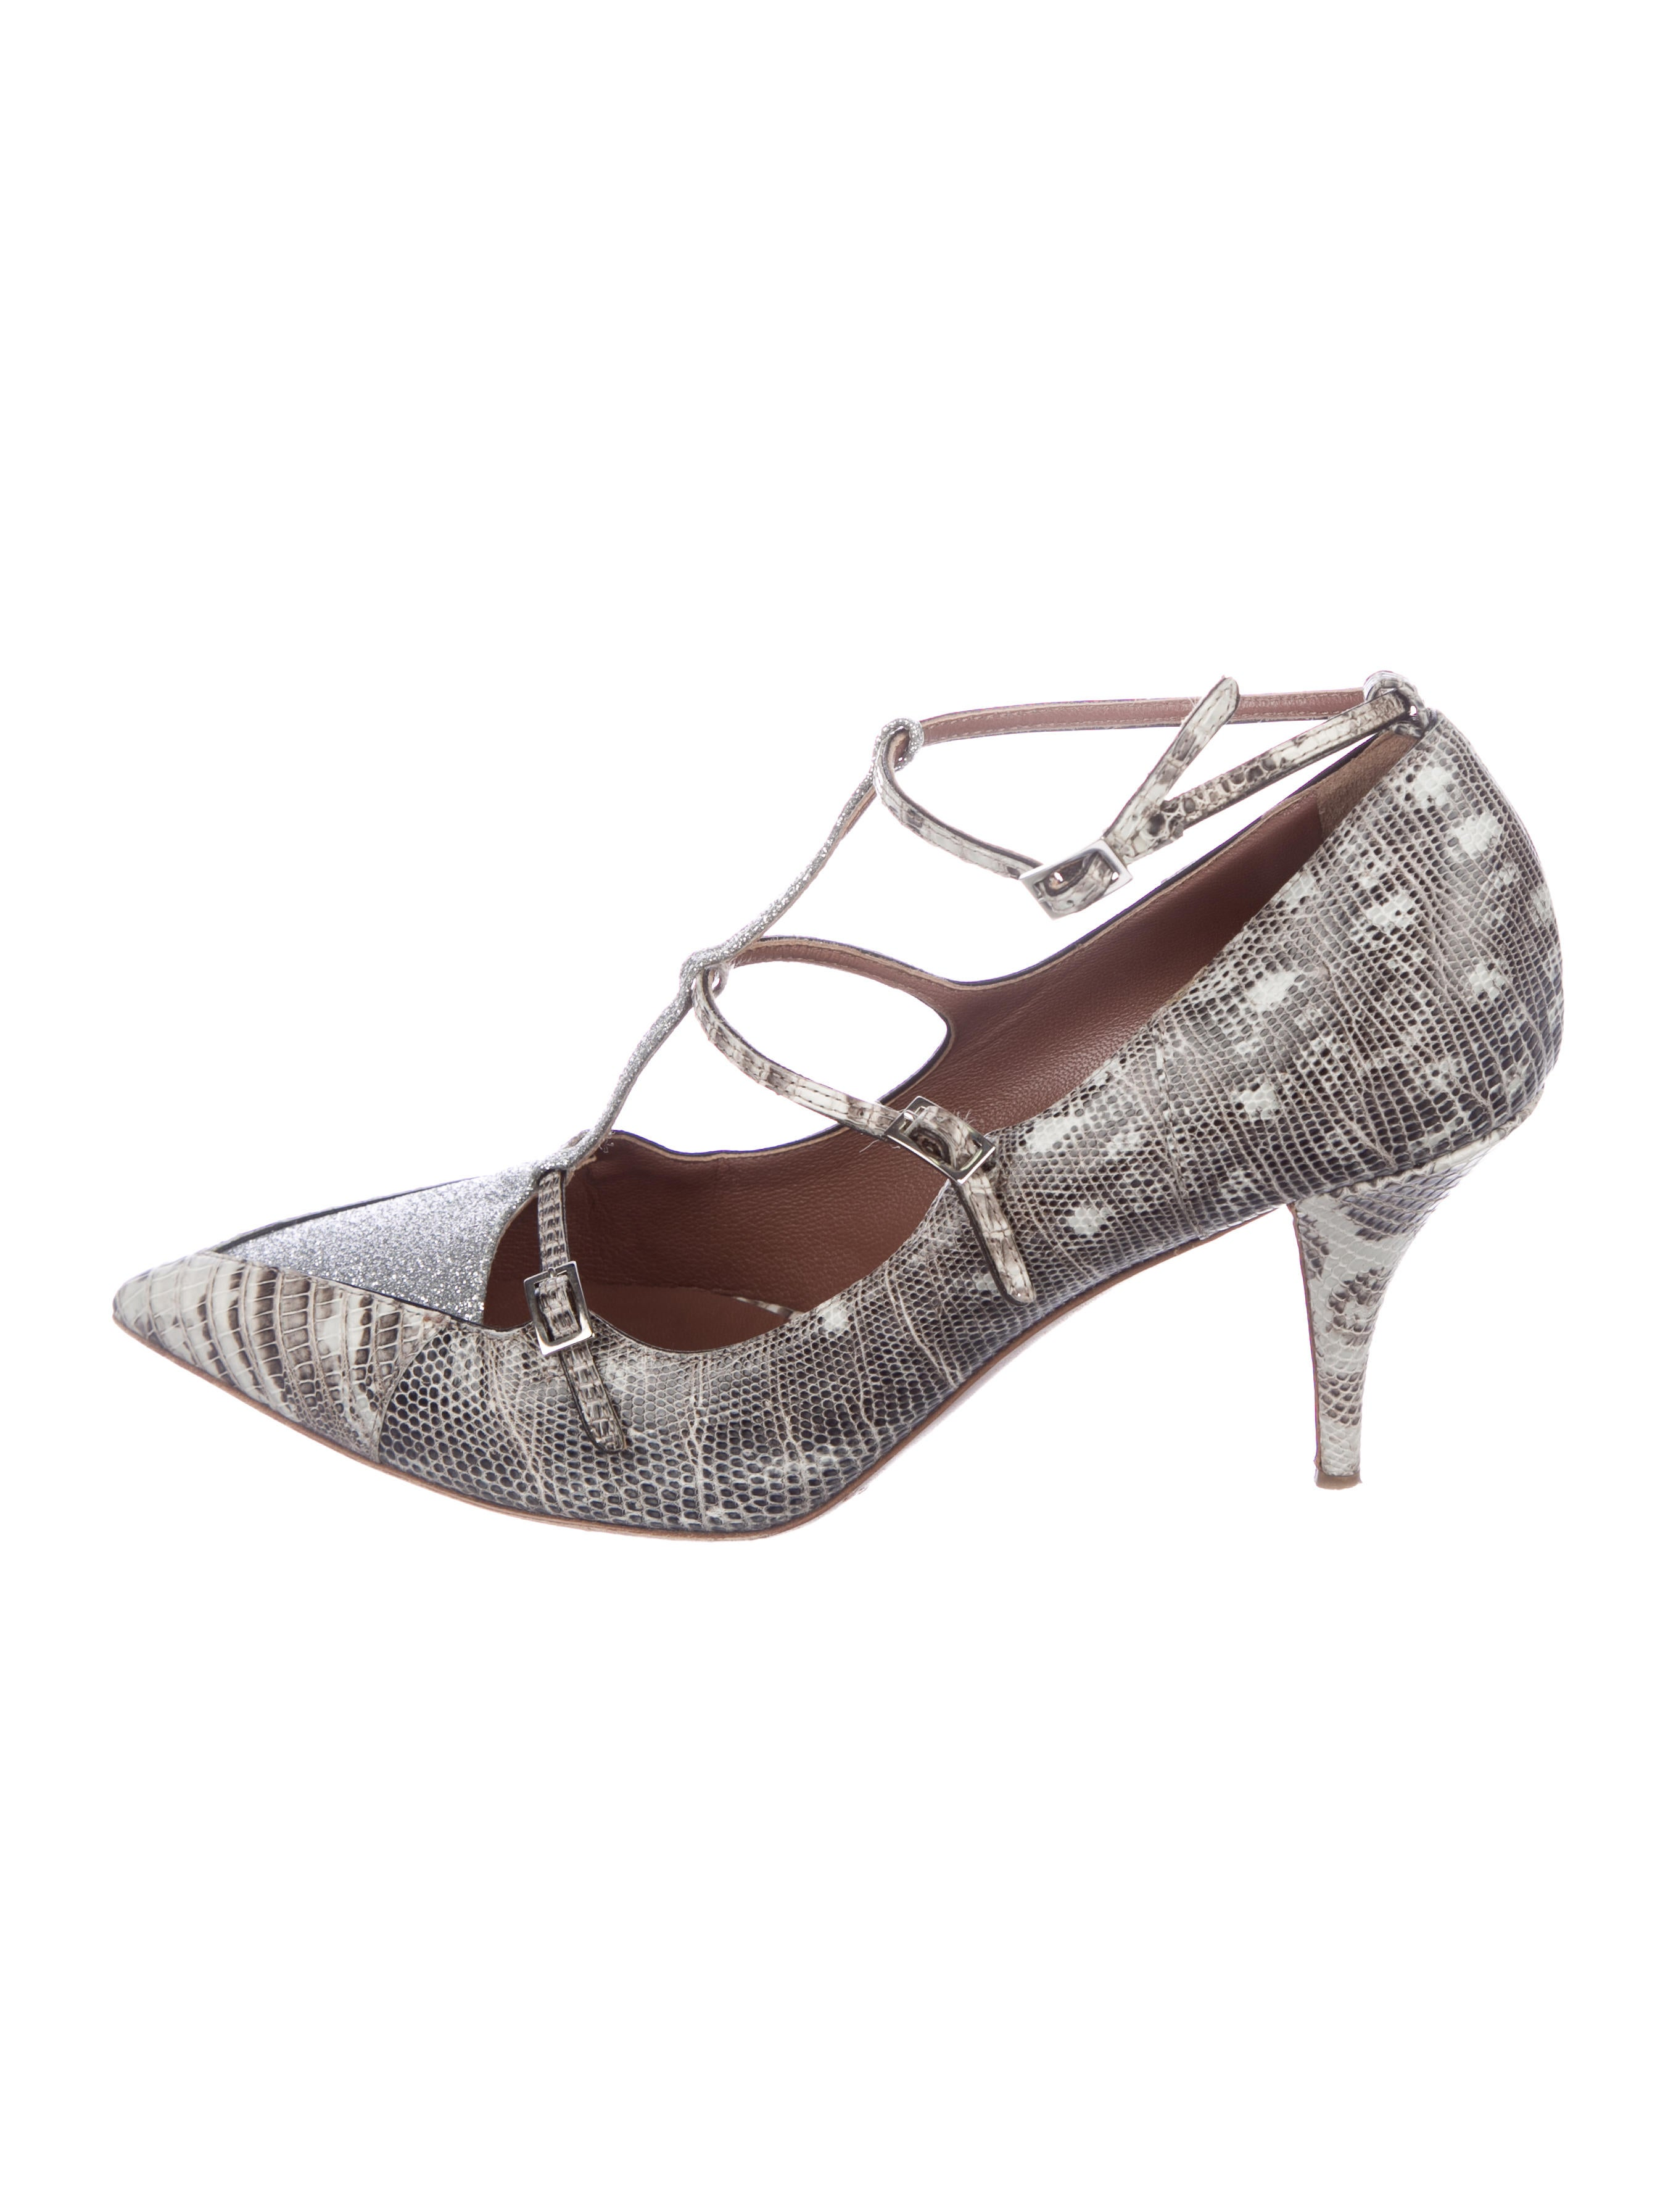 cheap price top quality Tabitha Simmons Lizard Pointed-Toe Pumps clearance new styles comfortable for sale in China cheap price Aoipvu